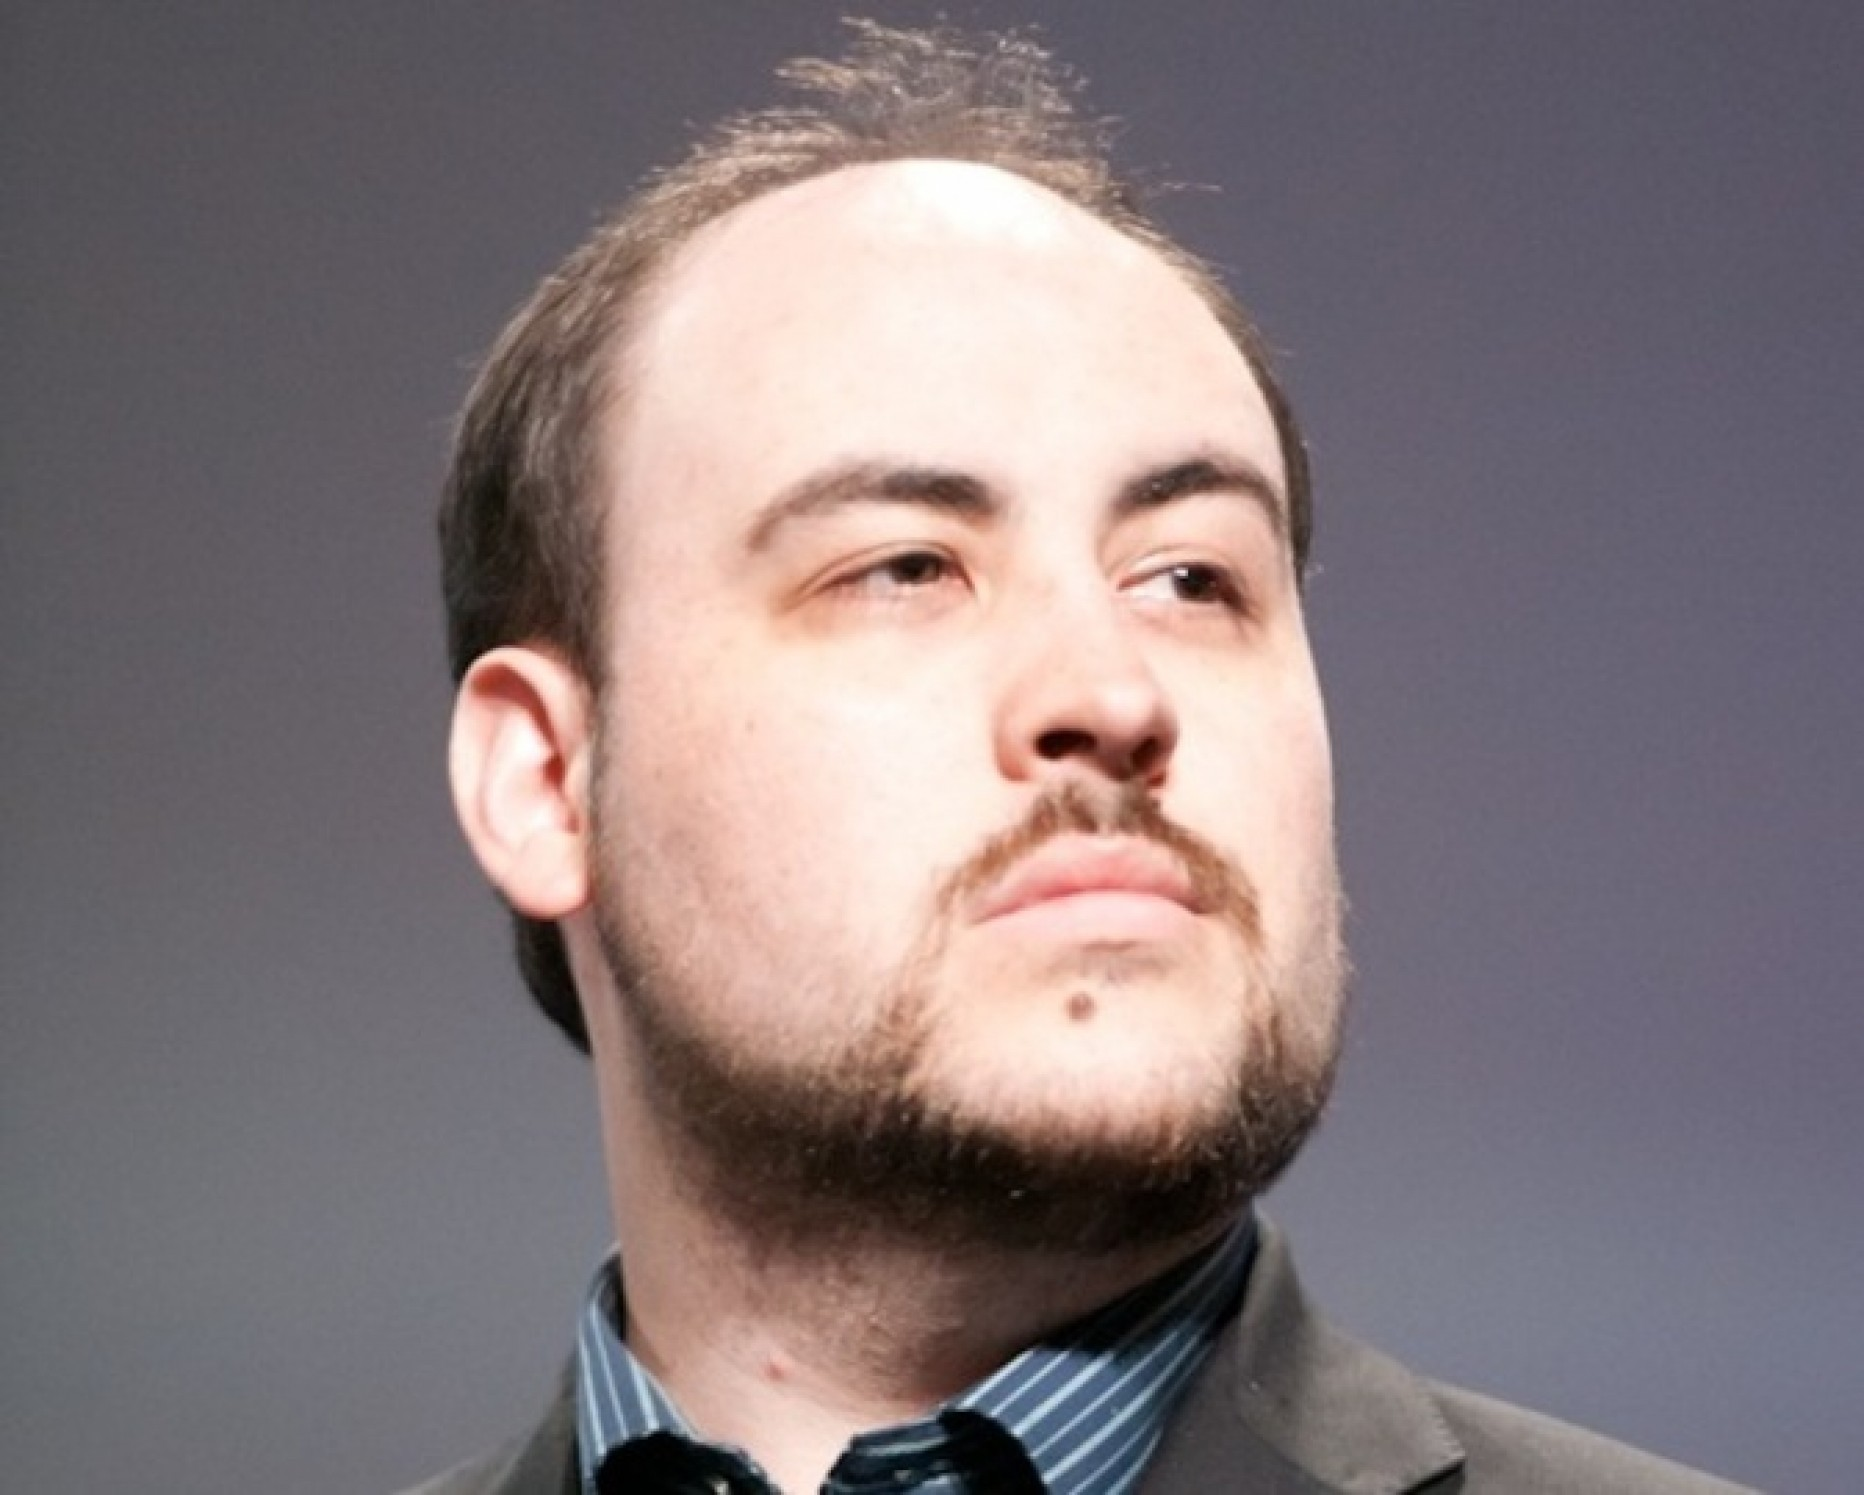 Seemly Totalbiscuit Starcraft Wings Liberty Planetside Facial Hair Personchin Brow Forehead Nose Totalbiscuit Know Your Meme Thinking Meme Origin Thinking Meme Generator nice food Smart Thinking Meme